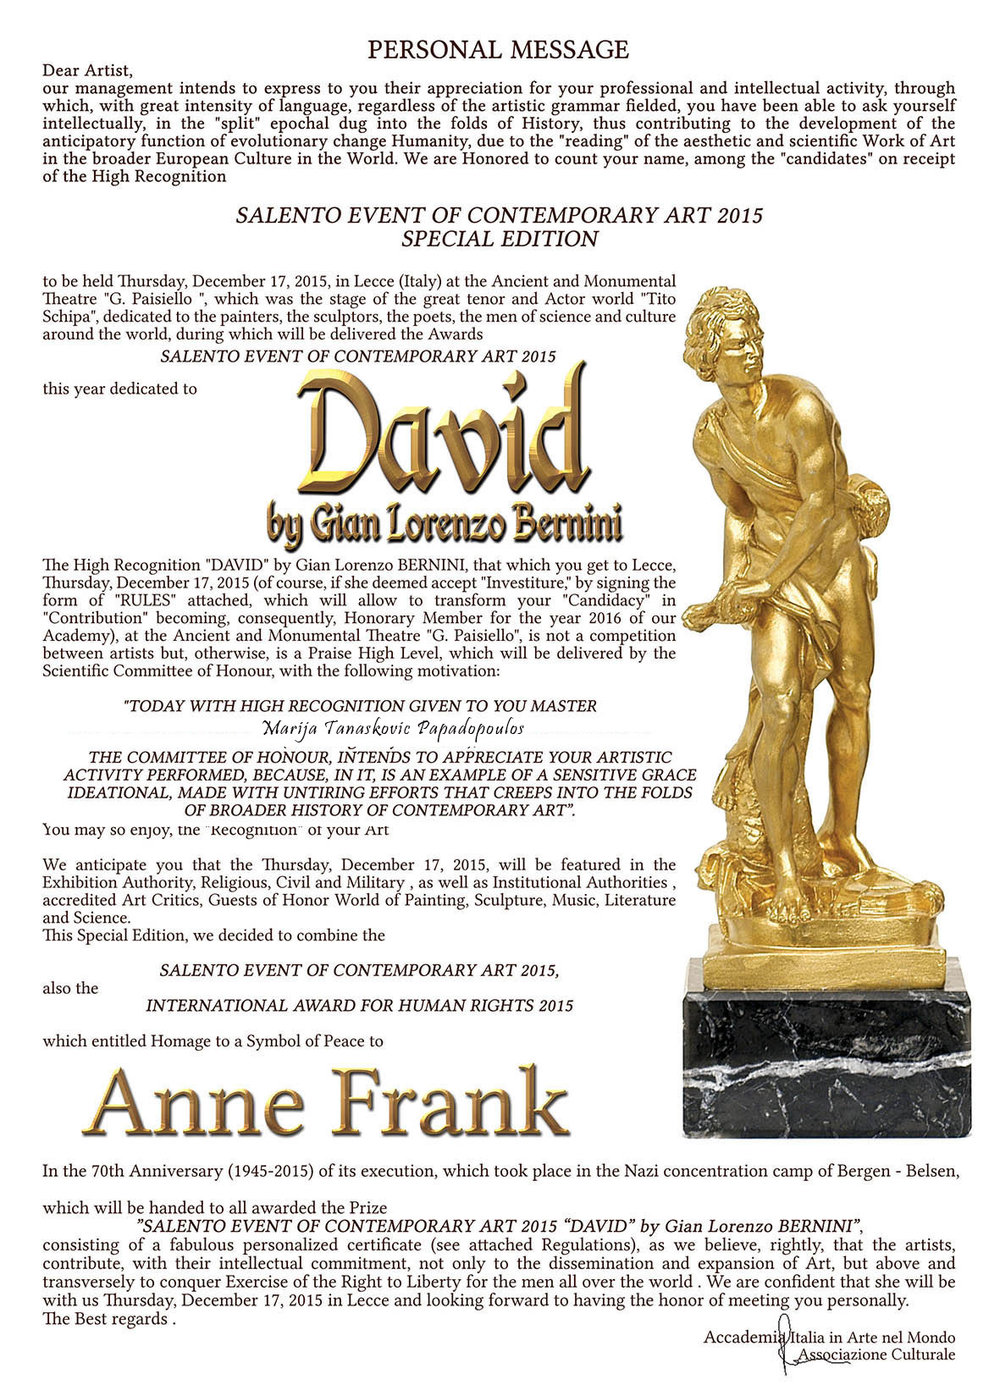 PERSONAL-MESSAGE-AND-REGULATION-DAVID-BERNINI-AWARD--2015.jpg